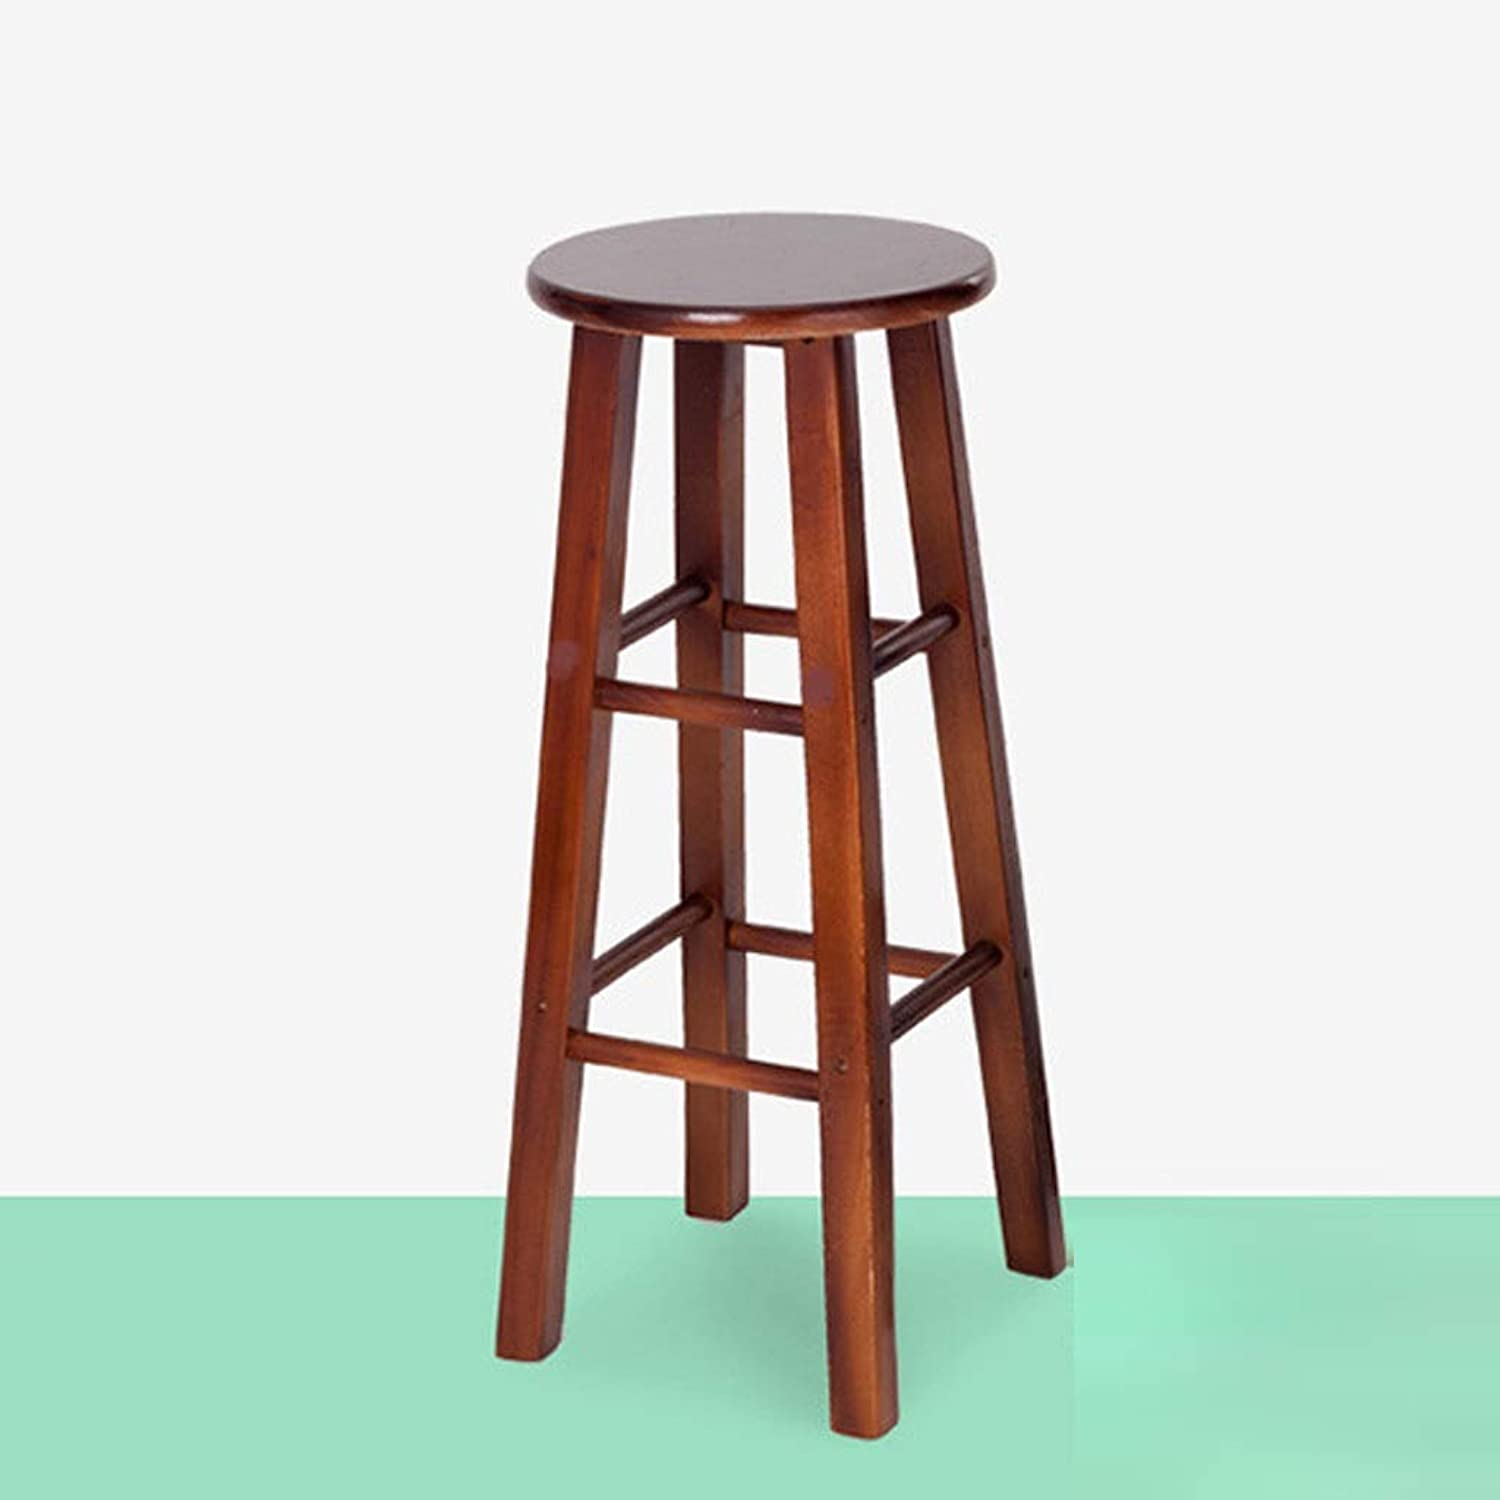 Llsdls Solid Wood Bar Chair Oak Step Stool Home Bar Stool High Stool Retro Bar Cafe Modern Minimalist Bar Chair.